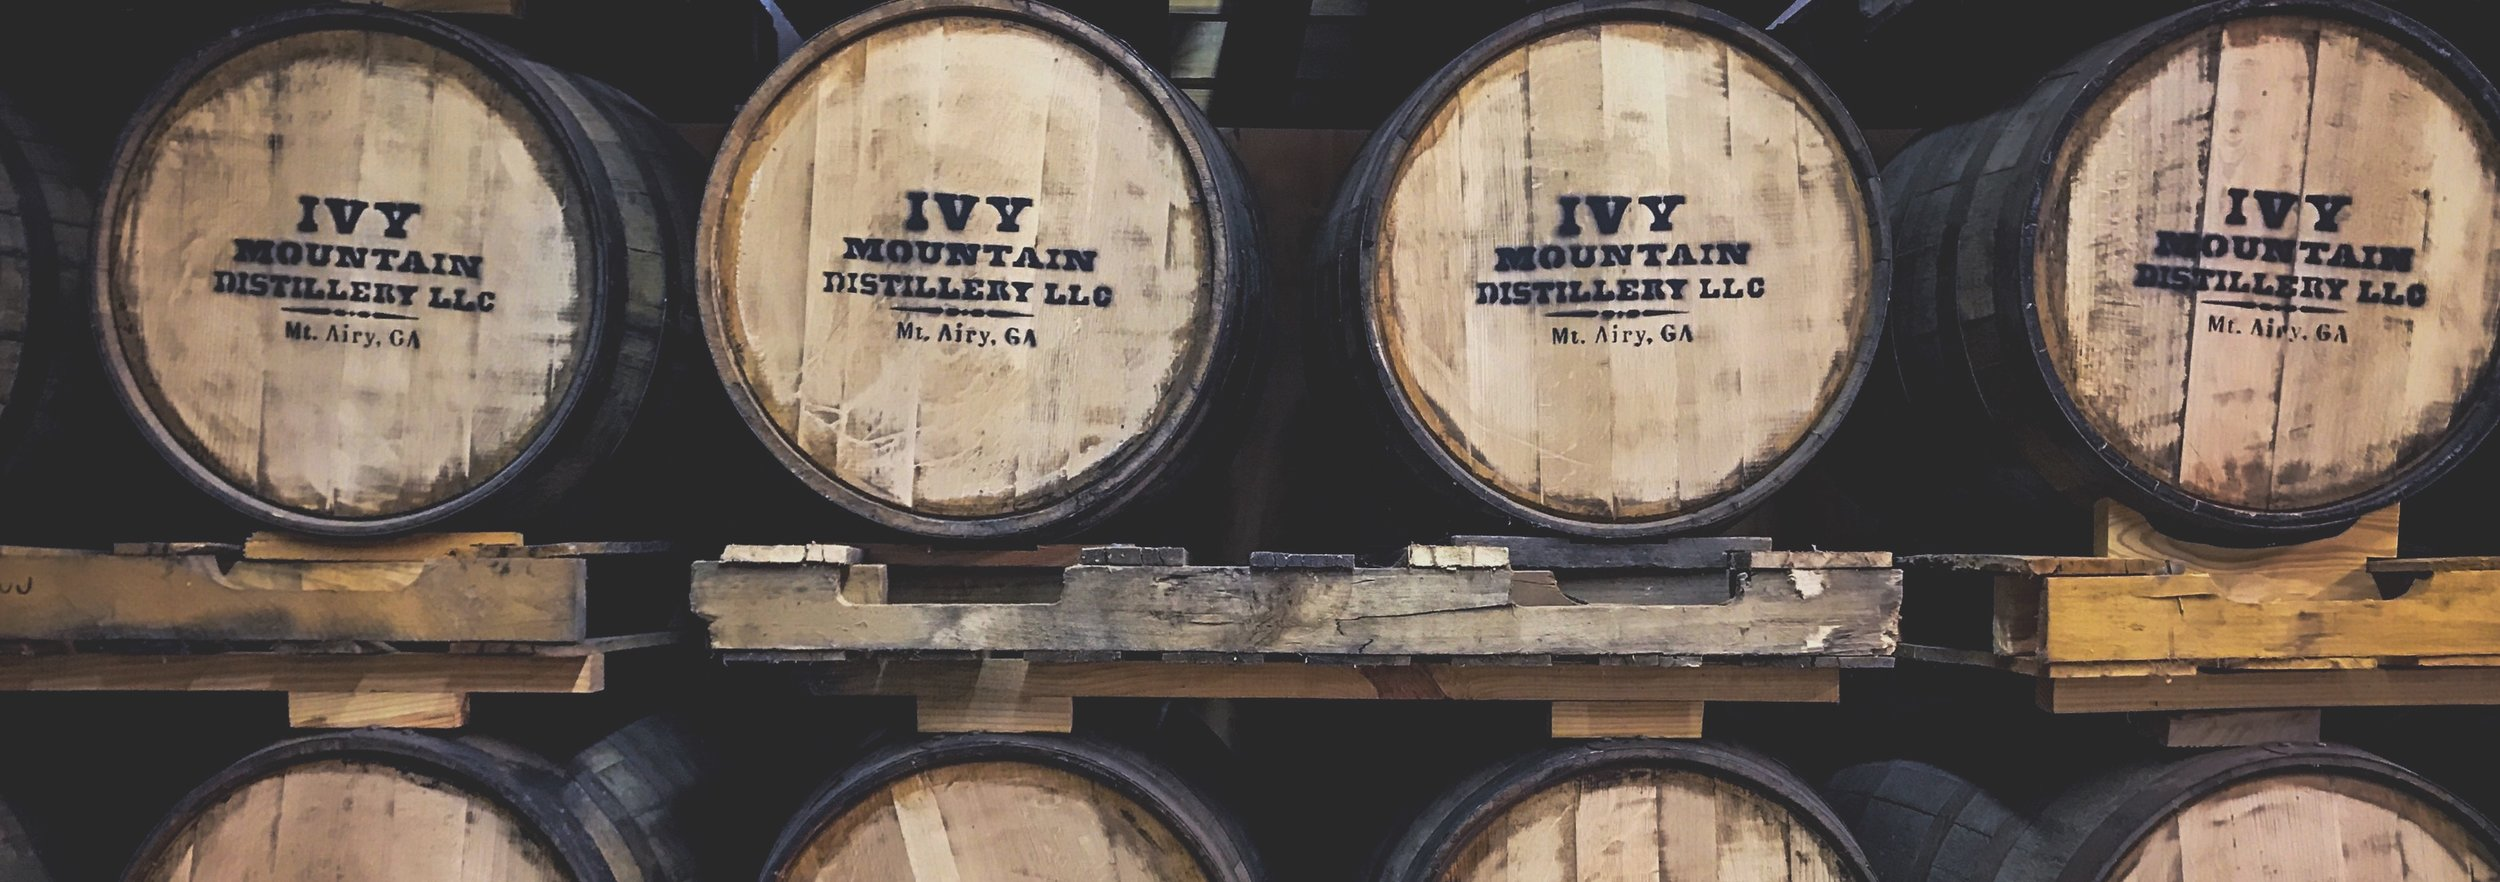 Ivy Mountain Distillery